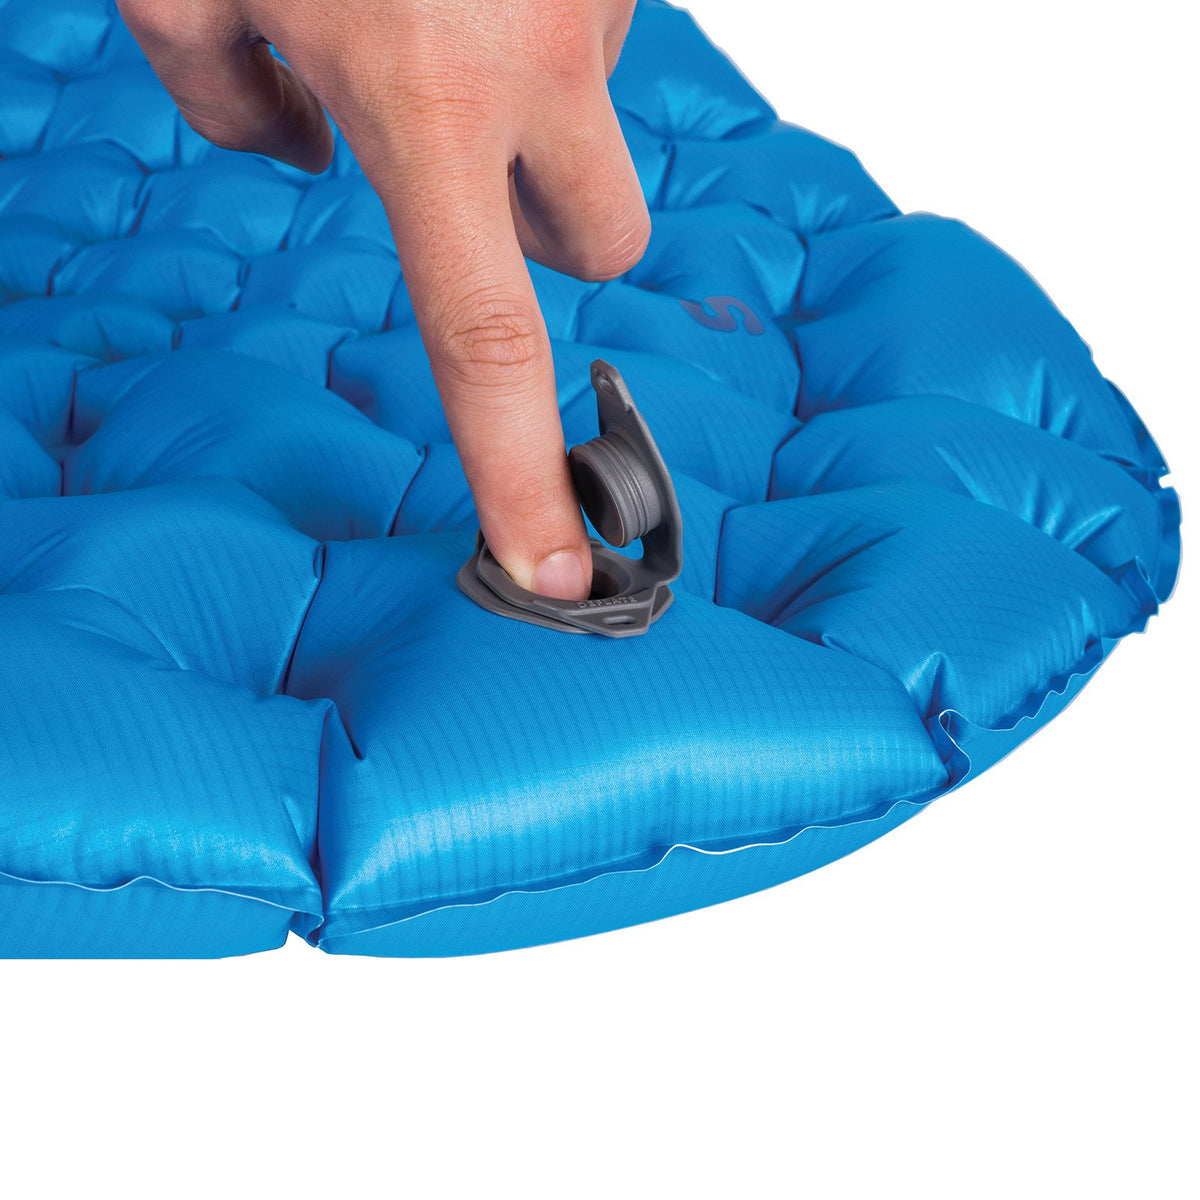 Sea to Summit UltraLight Mat showing finger pointing to inflation valve